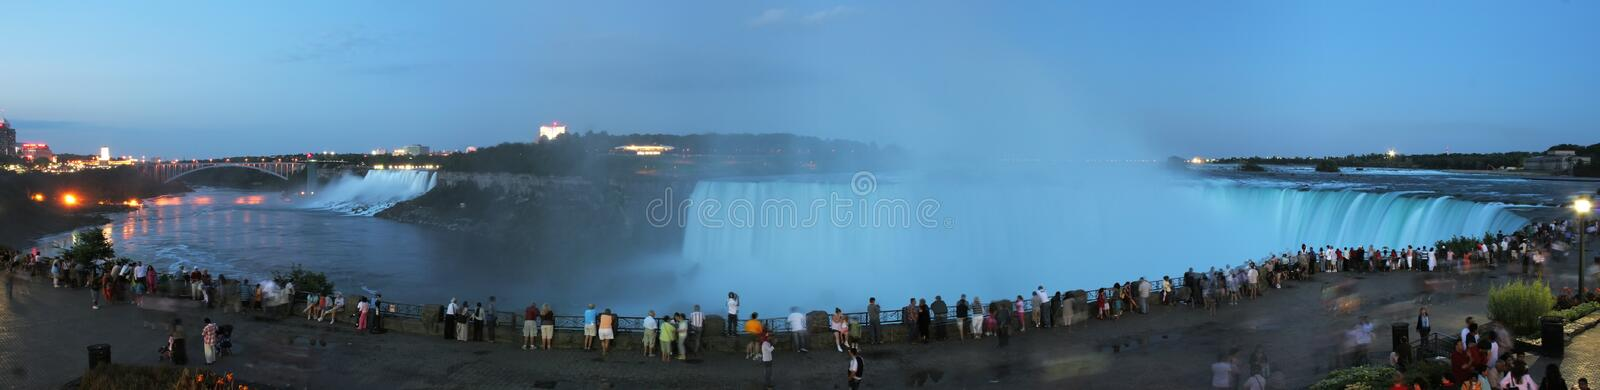 Download People Standing Near Body Of Water Stock Image - Image of crowd, stock: 83020845